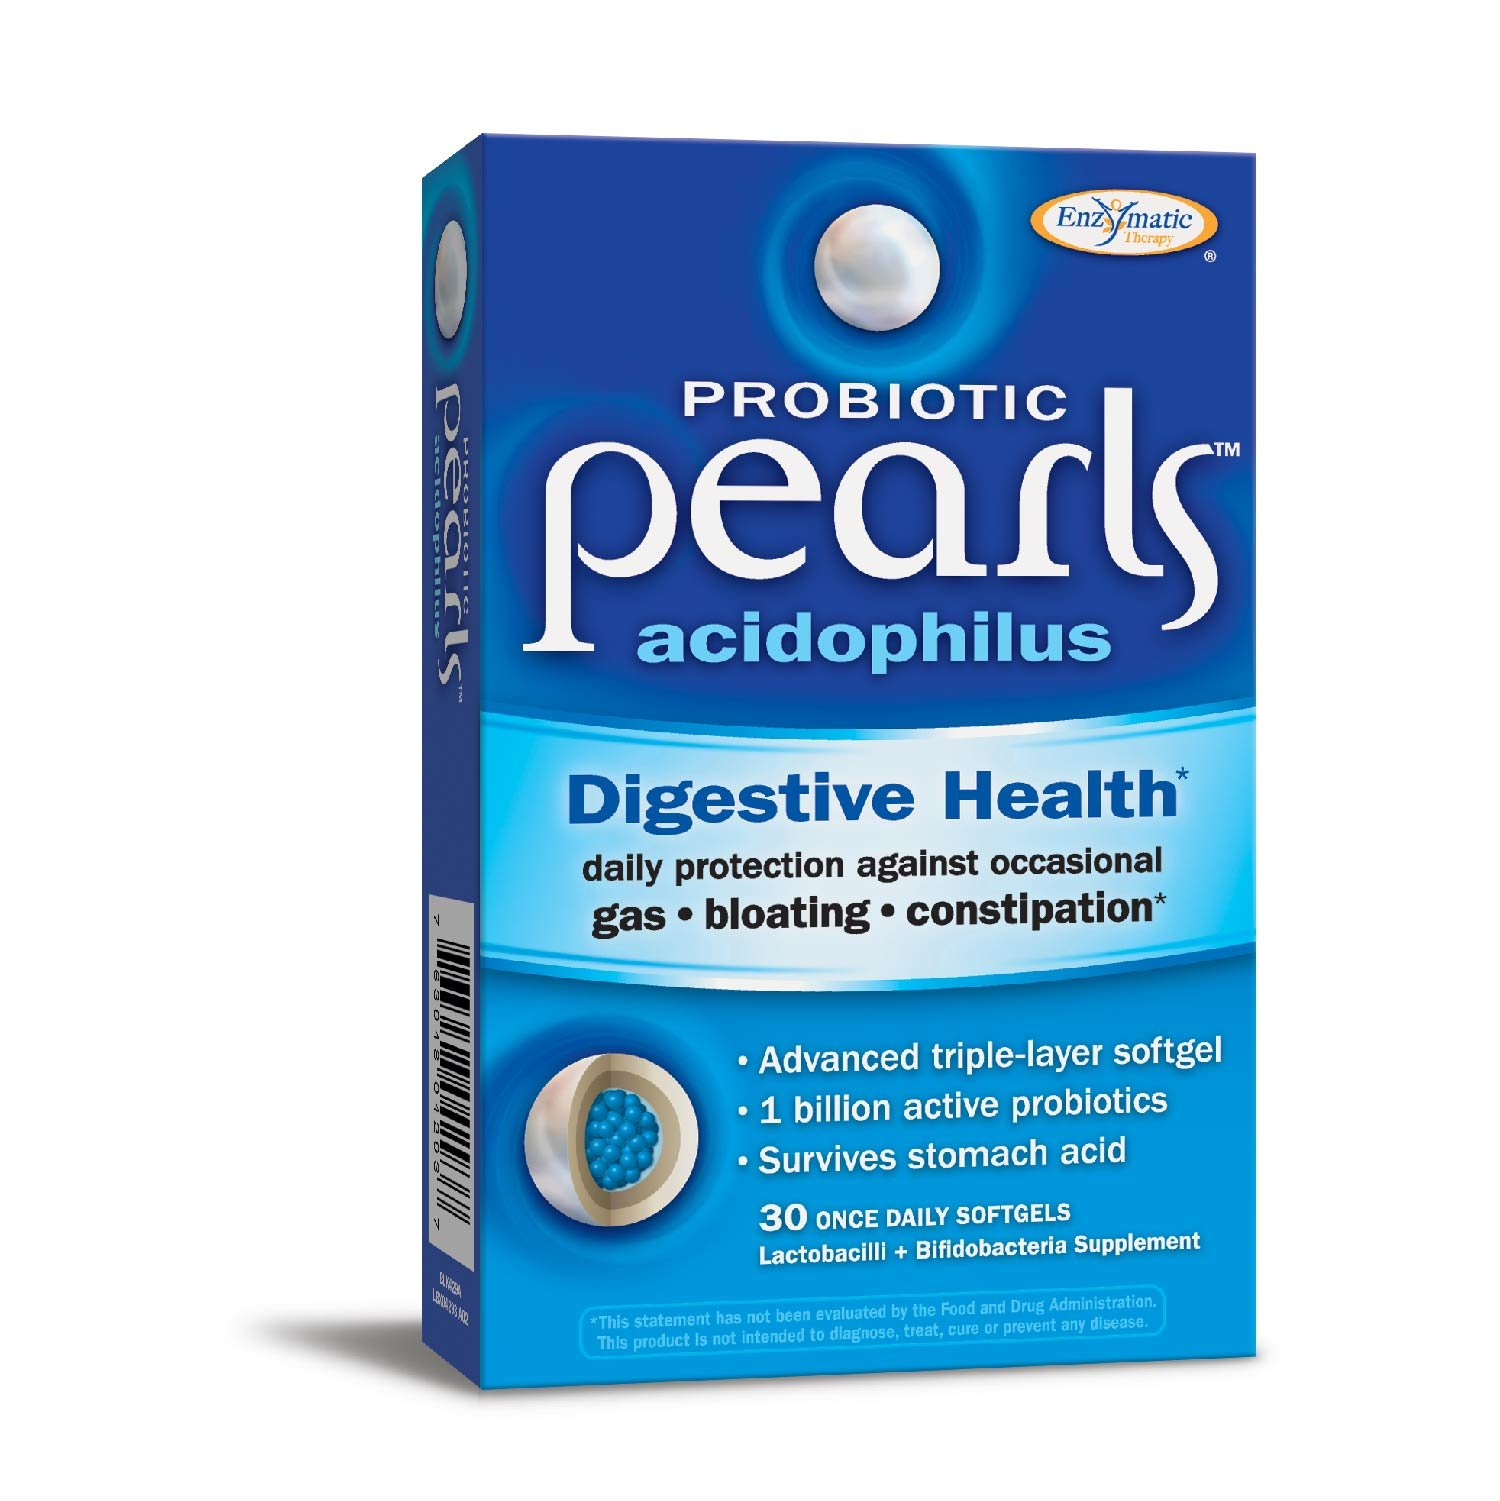 Enzymatic Therapy Probiotic Pearls Acidophilus (formerly Acidophilus Pearls), 30 Softgels, 30 Count